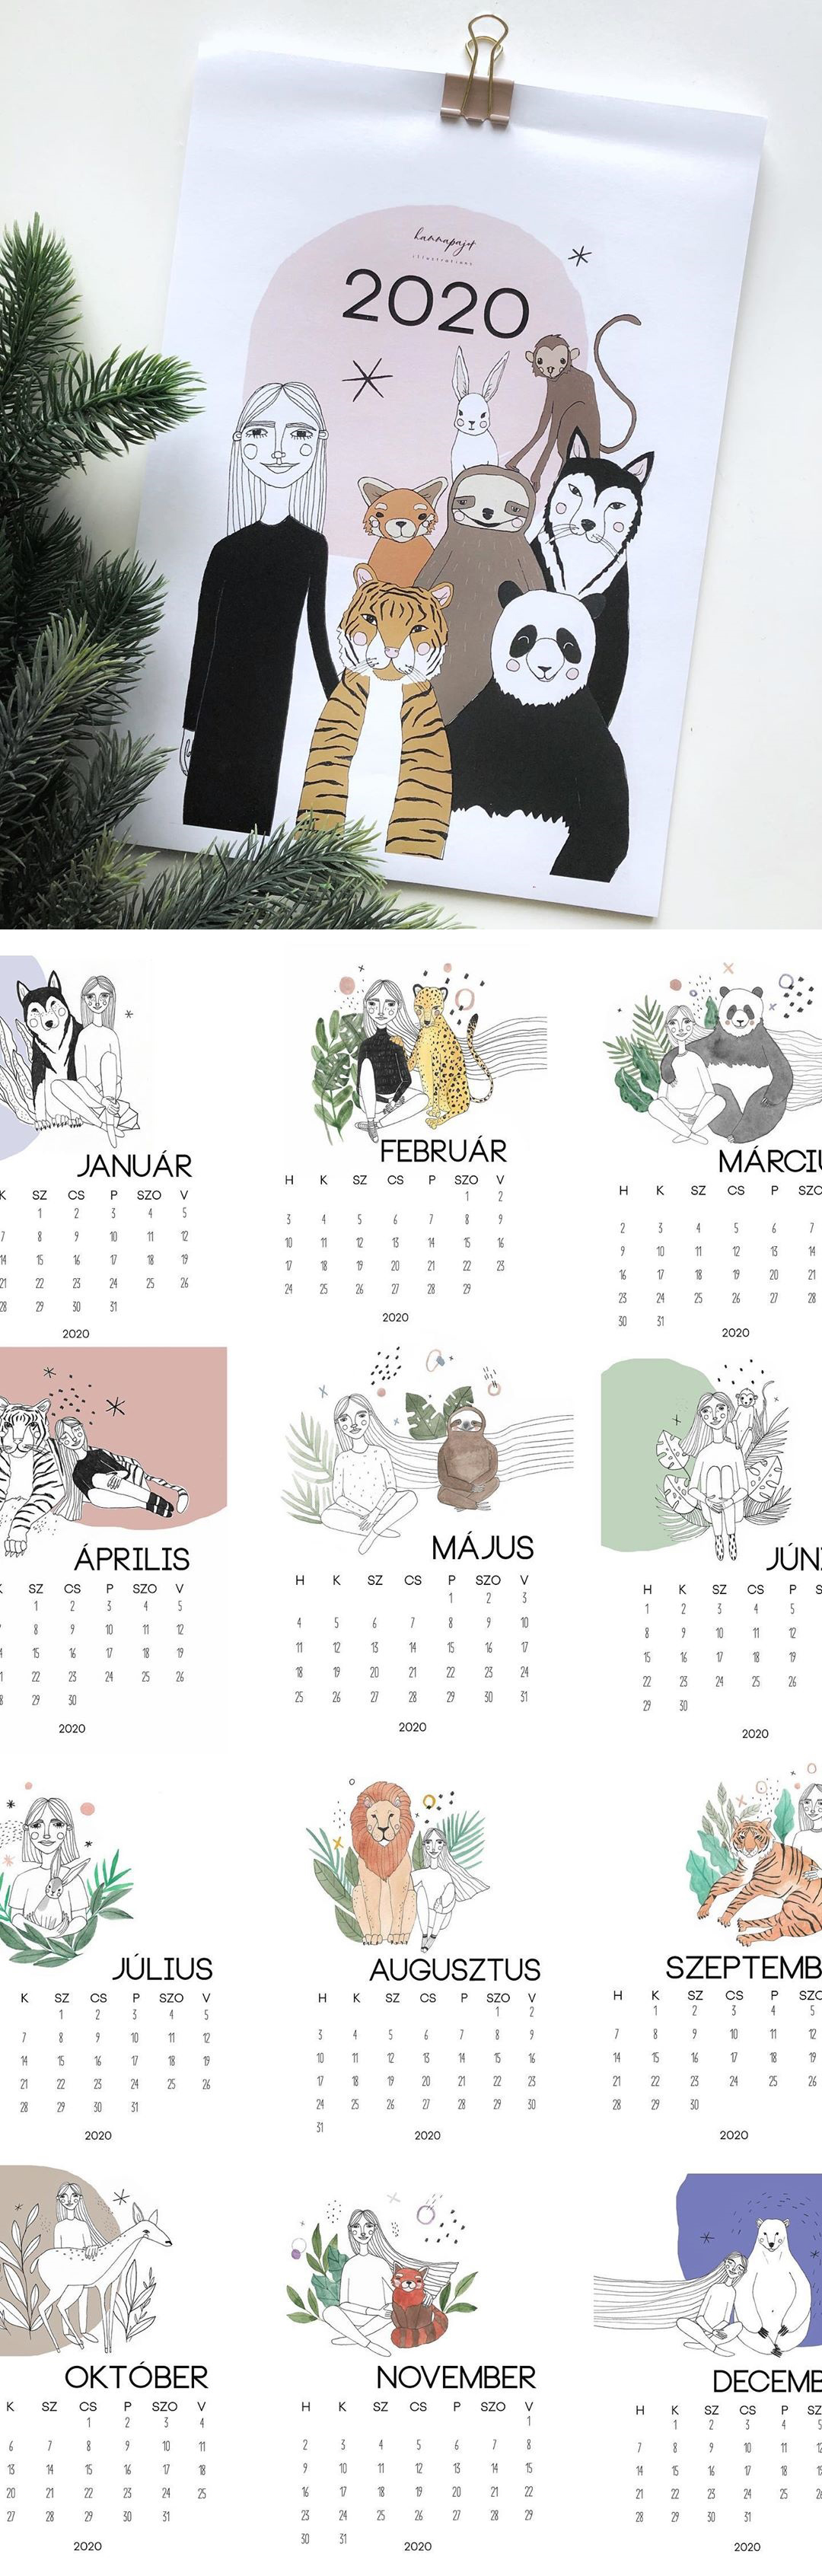 Create your own calendar in 2020 - downloadable blank calendar template | Hanna Pajor Illustration